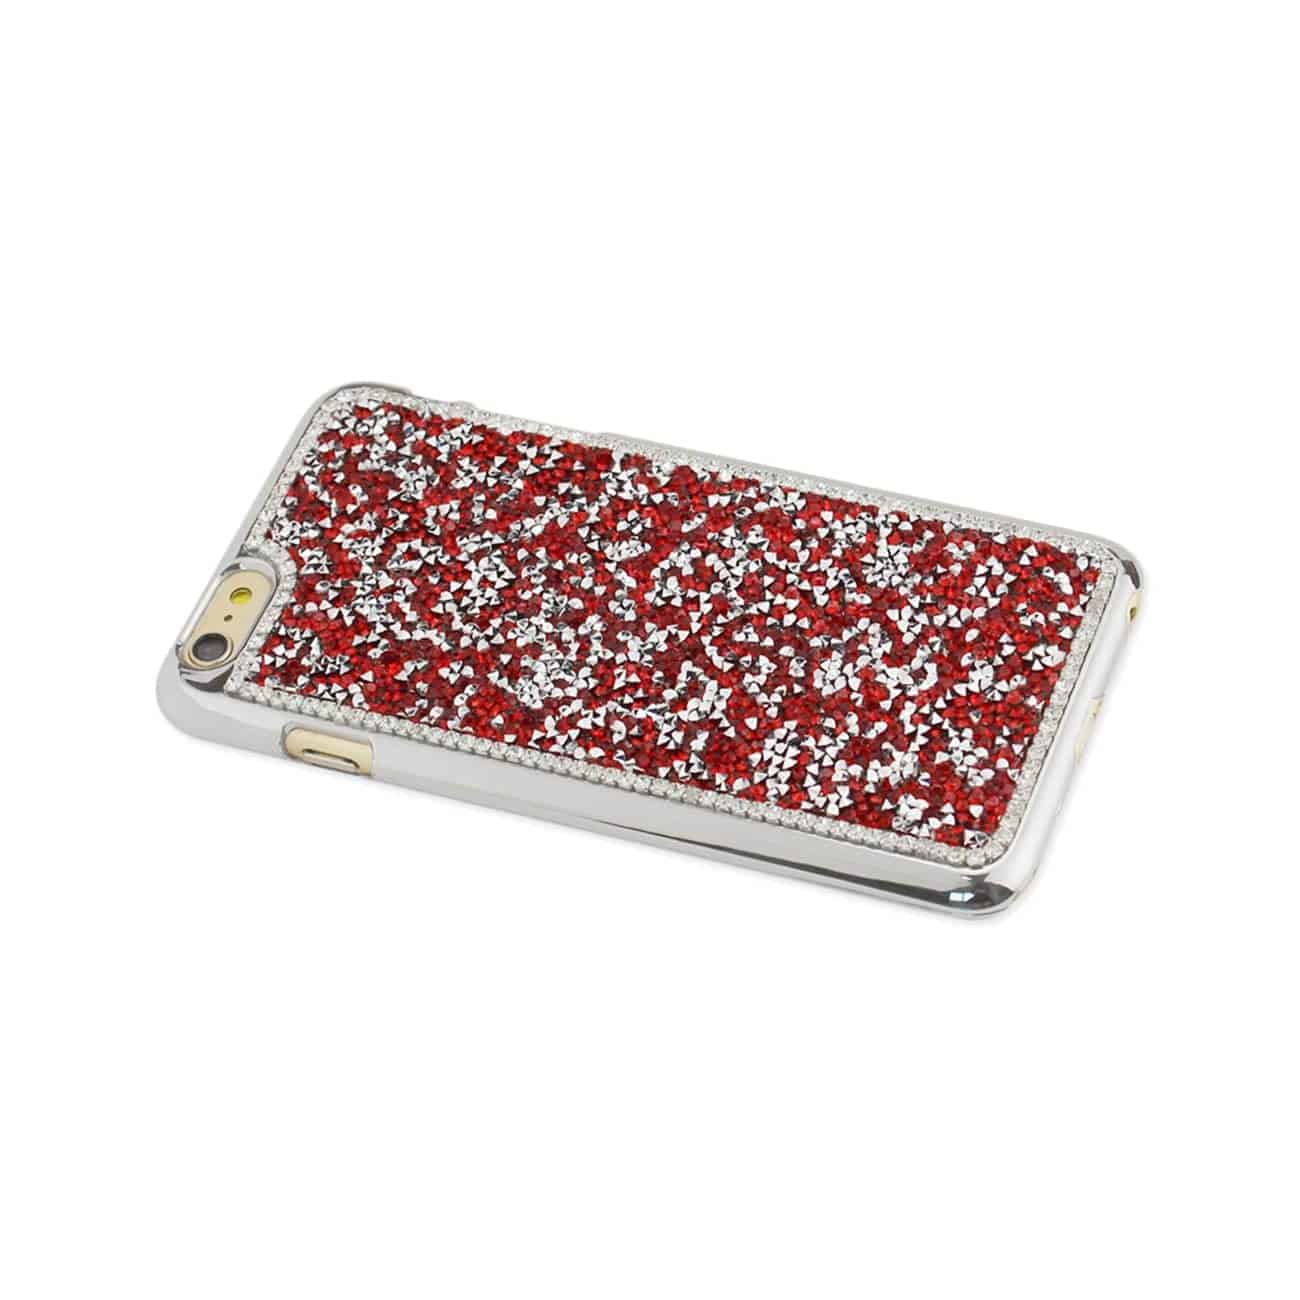 IPHONE 6 PLUS/ 6S PLUS JEWELRY BLING RHINESTONE CASE IN RED